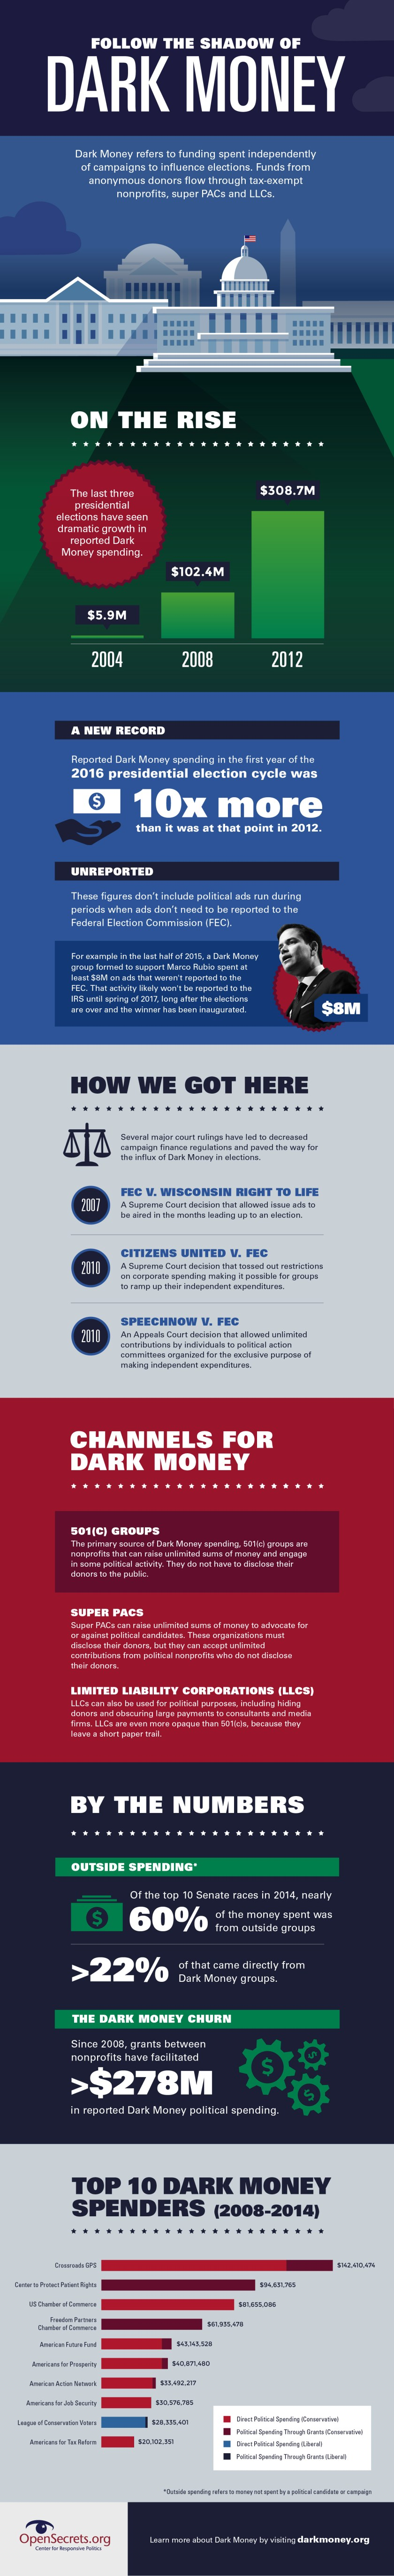 darkmoney-shadow-infographic